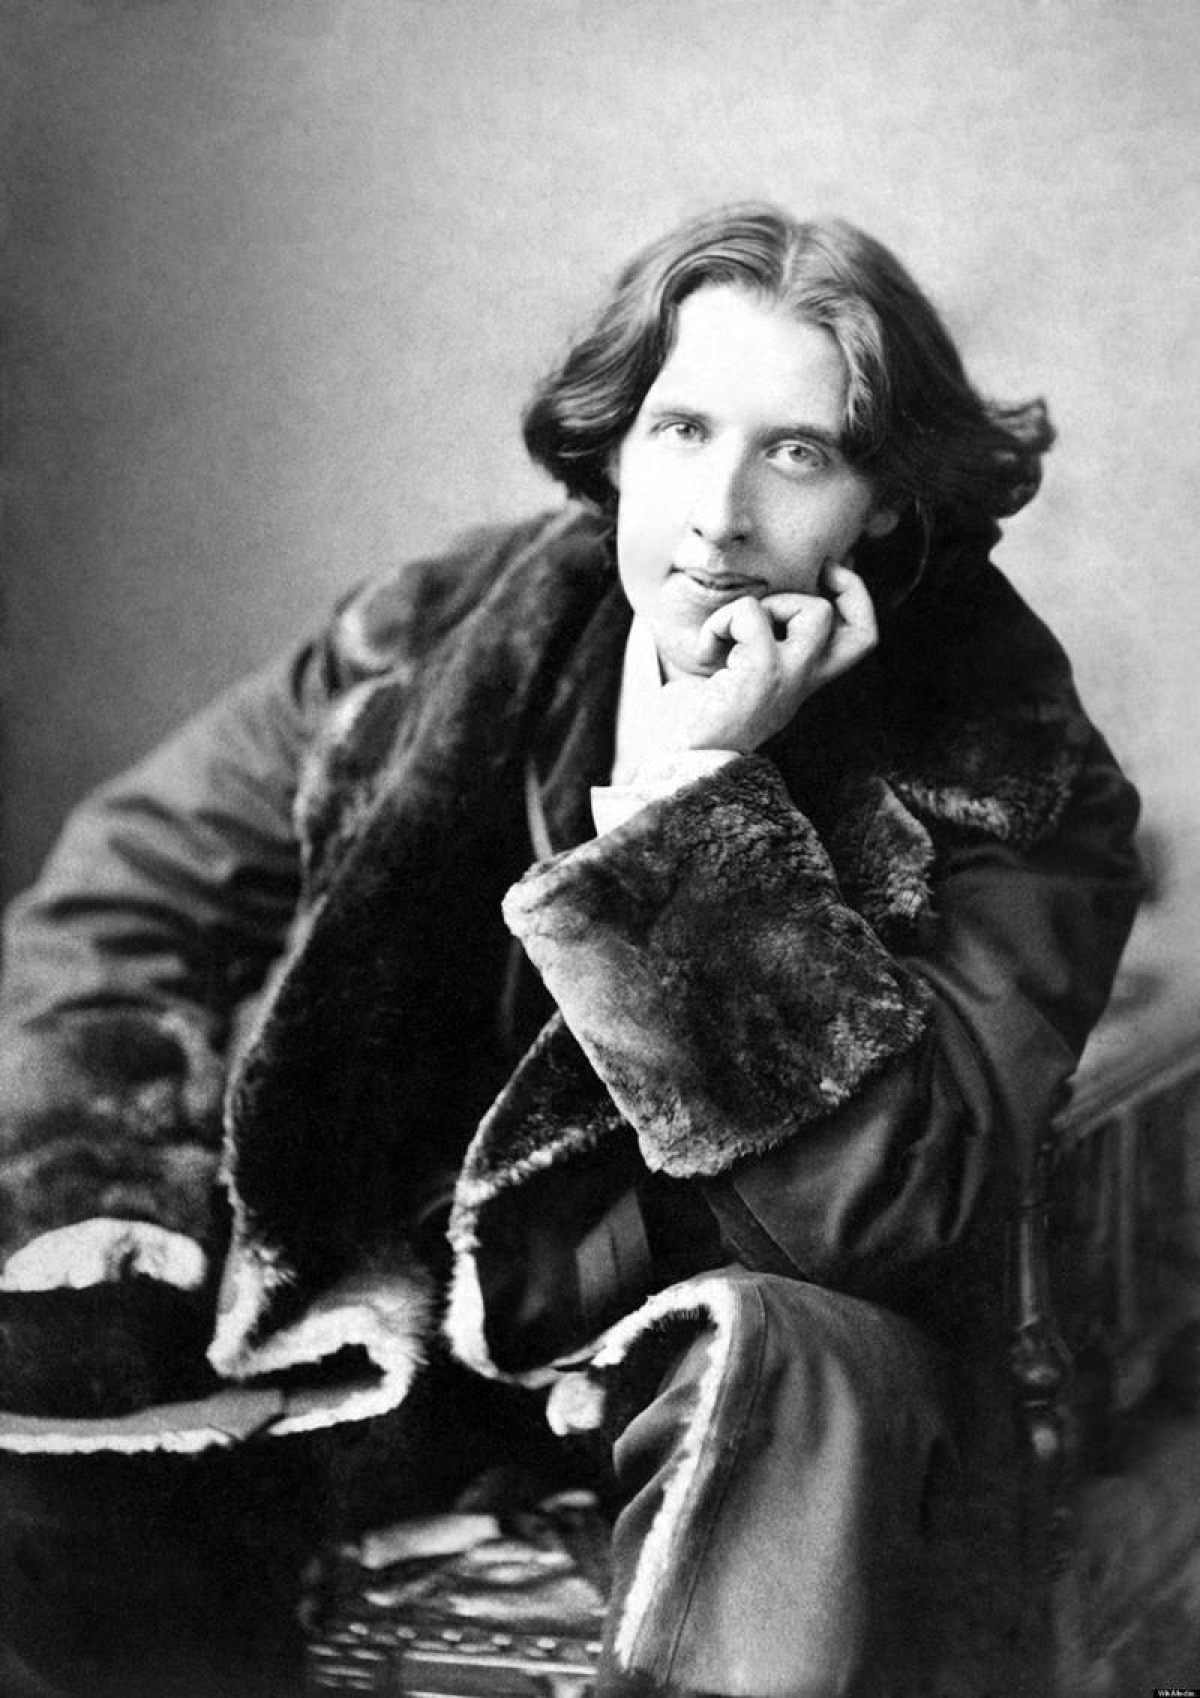 Celebrating Oscar Wilde, the iconic writer